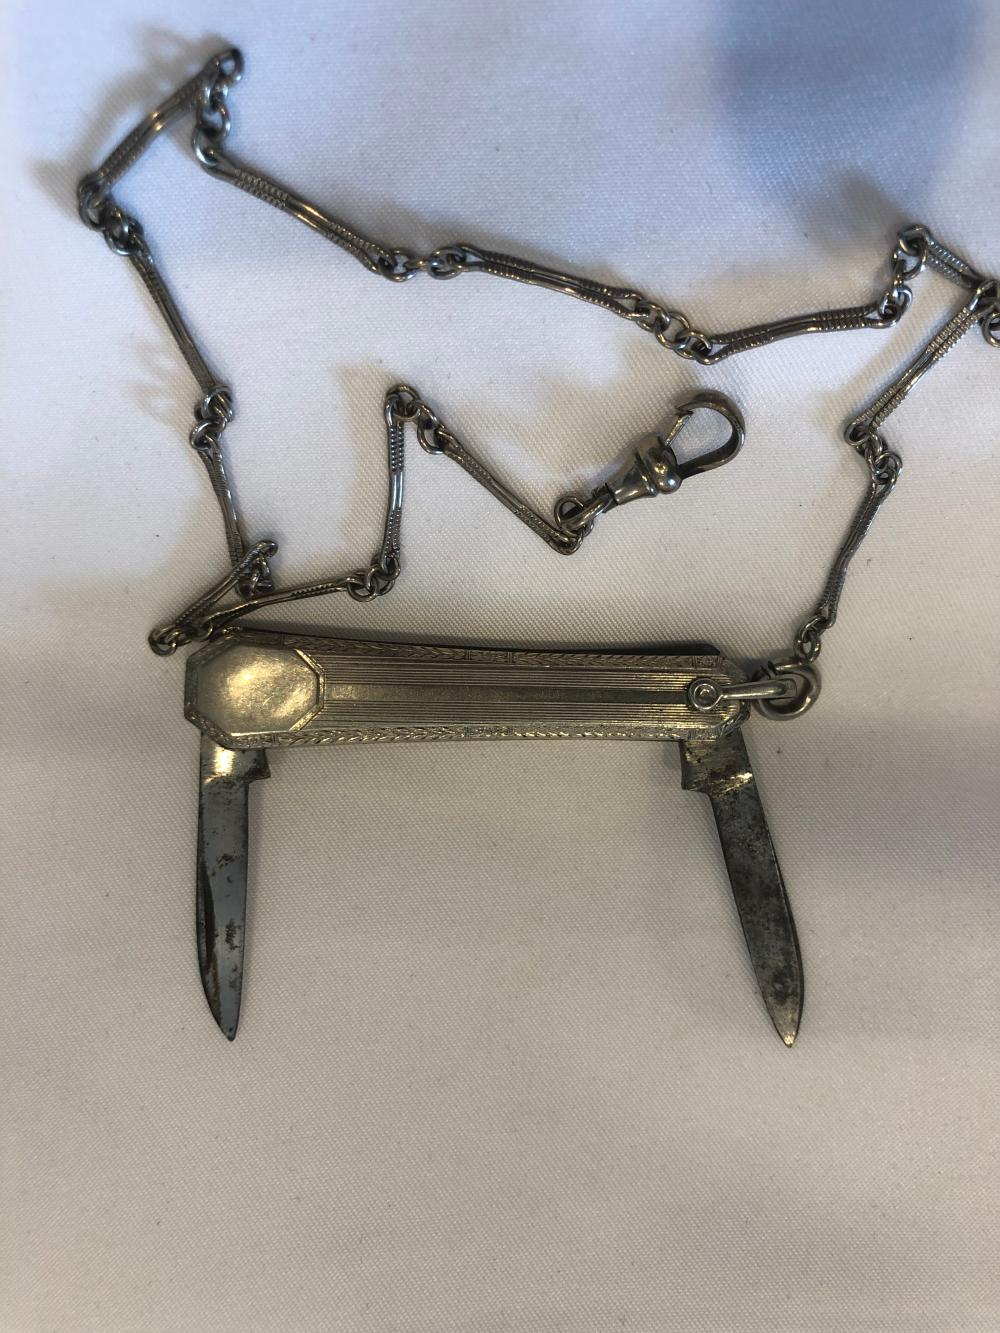 White Rolled Gold Pocket Knife with Chain